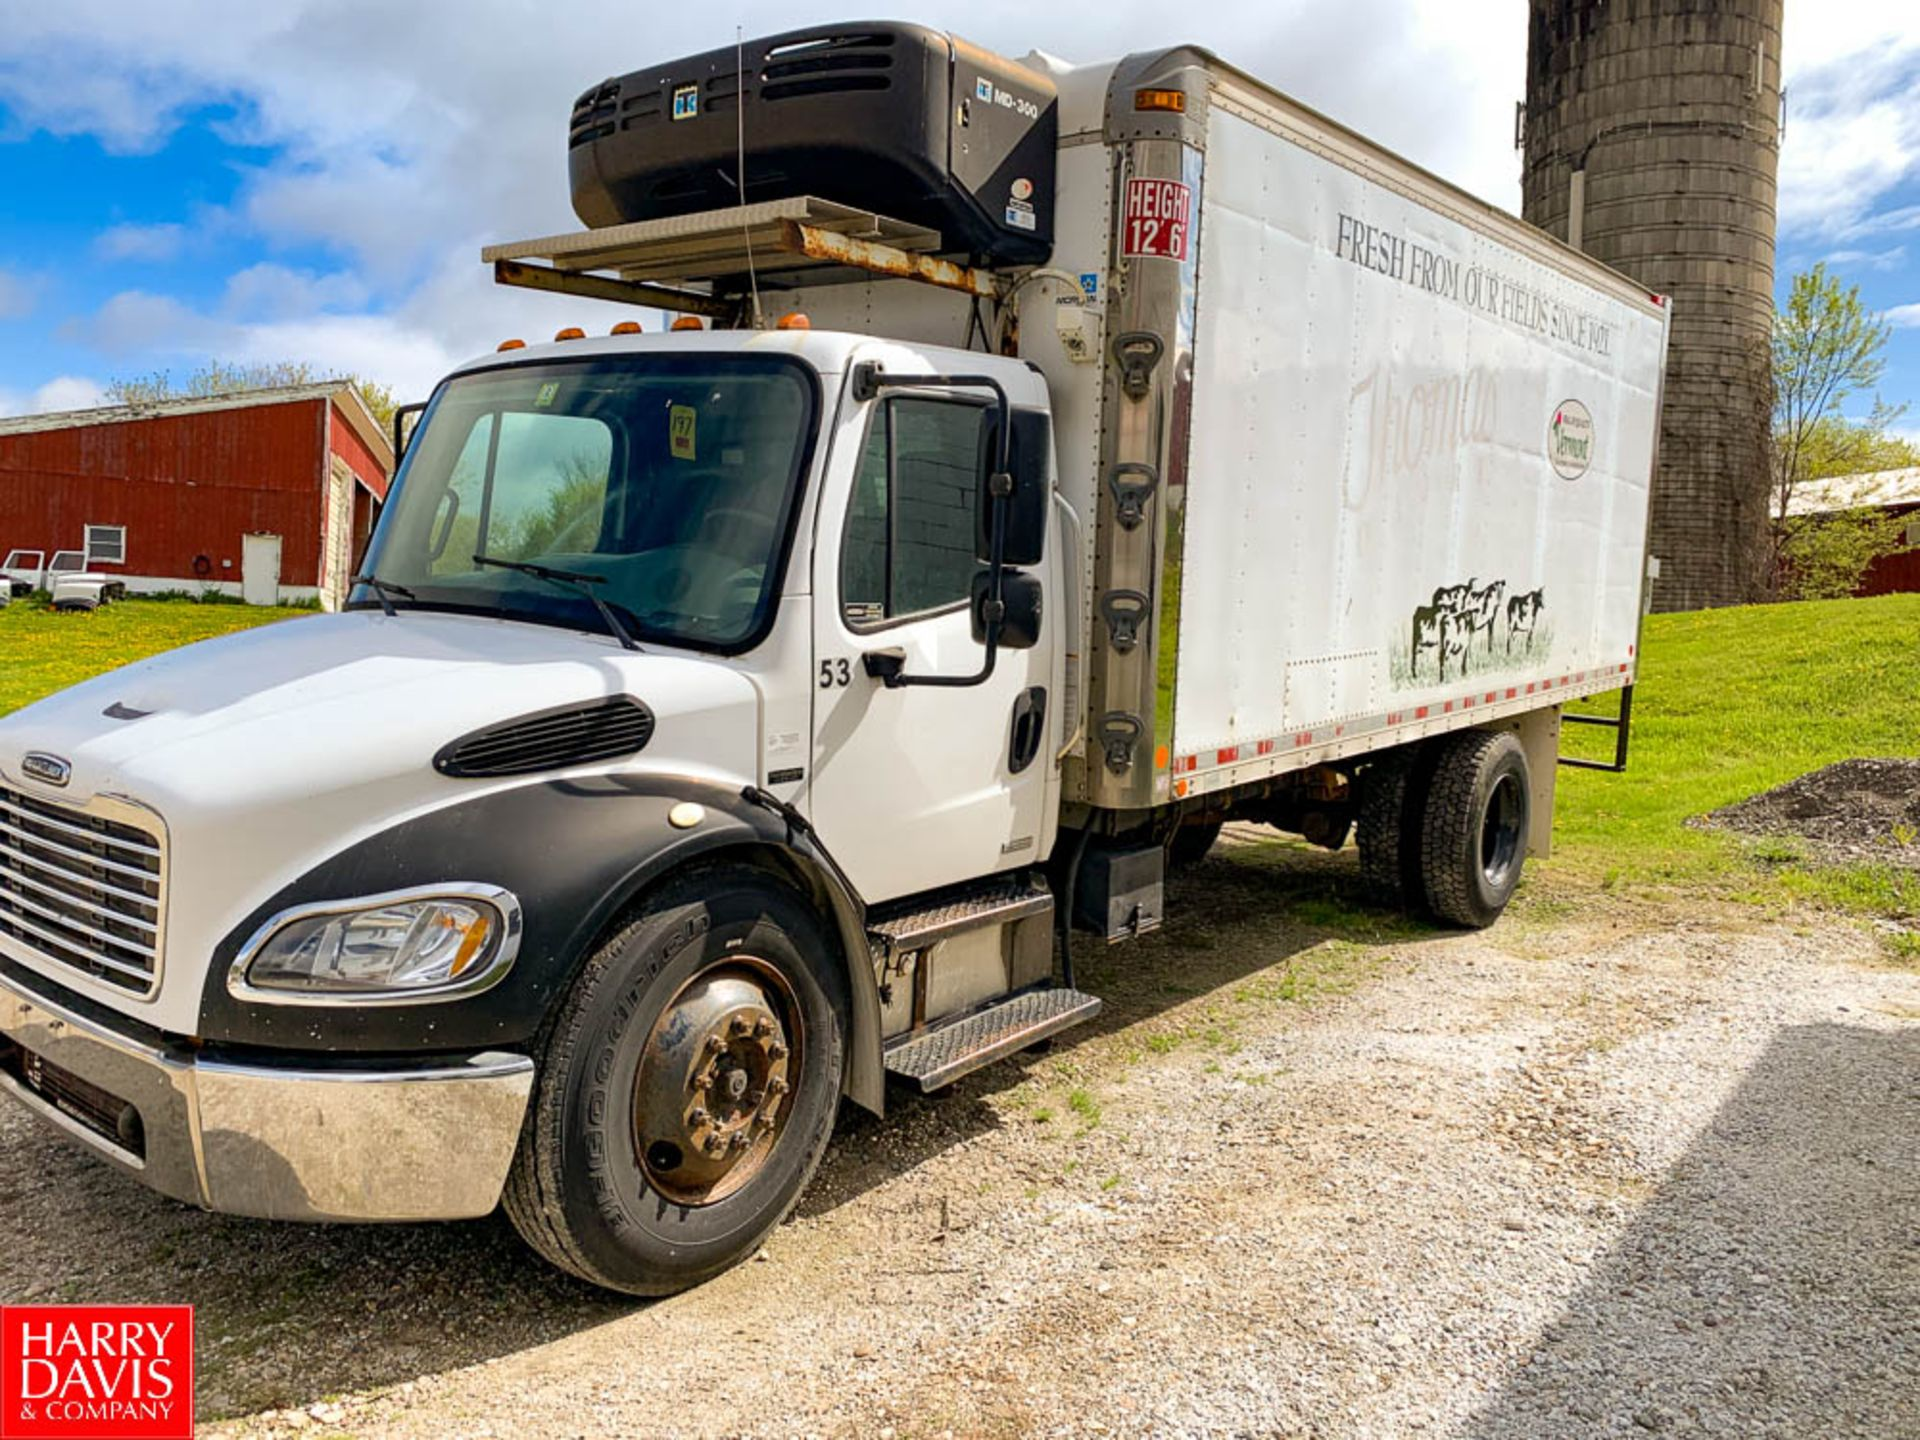 2006 Freightliner 20' Refrigerated Delivery Truck Model: M2106, 25,500 GVWR, Mercedes Benz 6.4